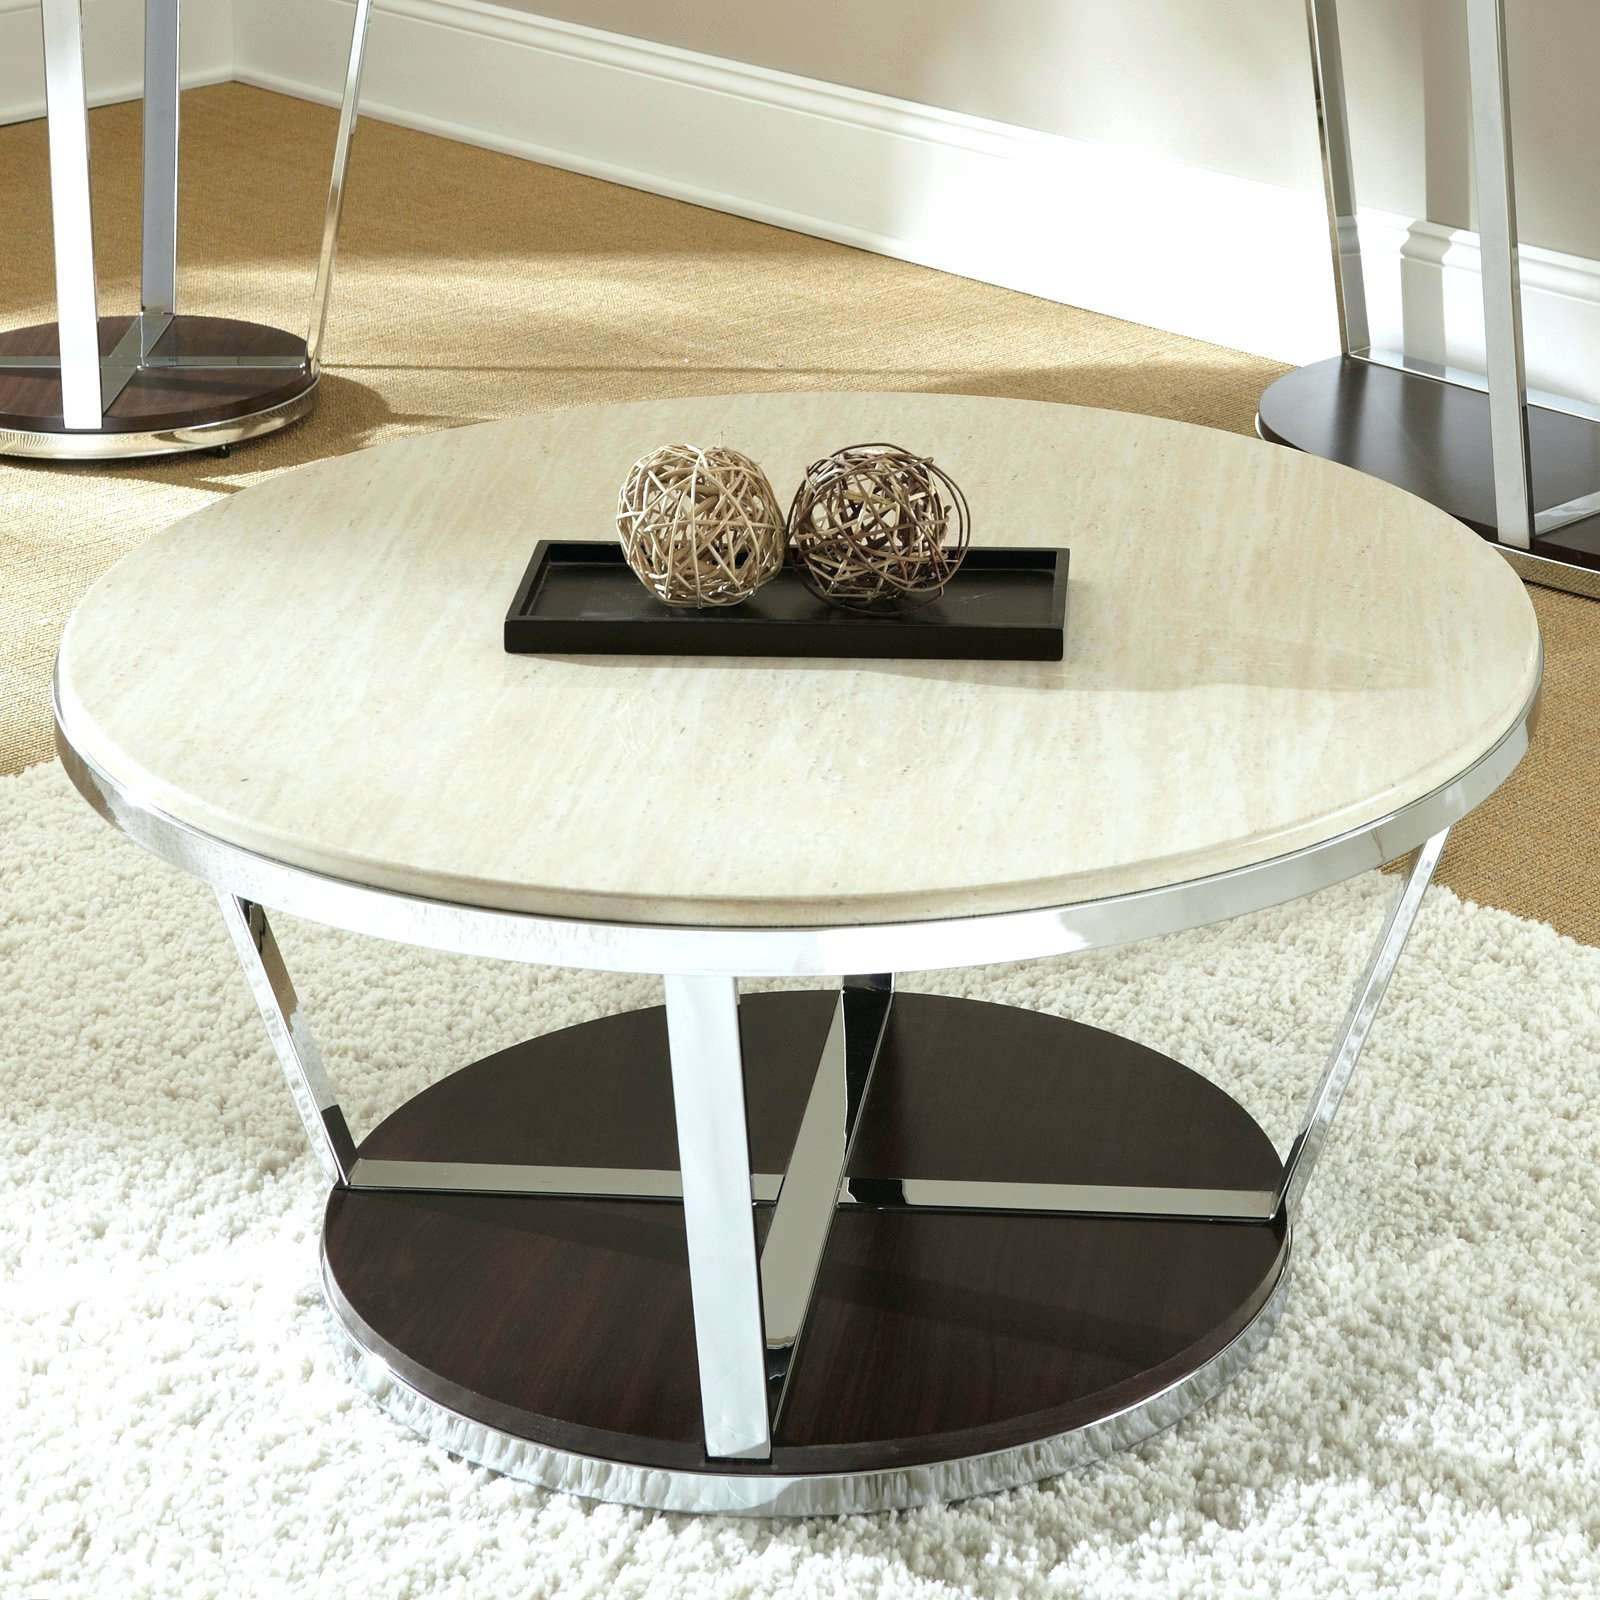 Trendy Marble And Metal Coffee Tables Within Coffee Tables : Round Wood Coffee Table With Shelf Marble Top (View 11 of 20)